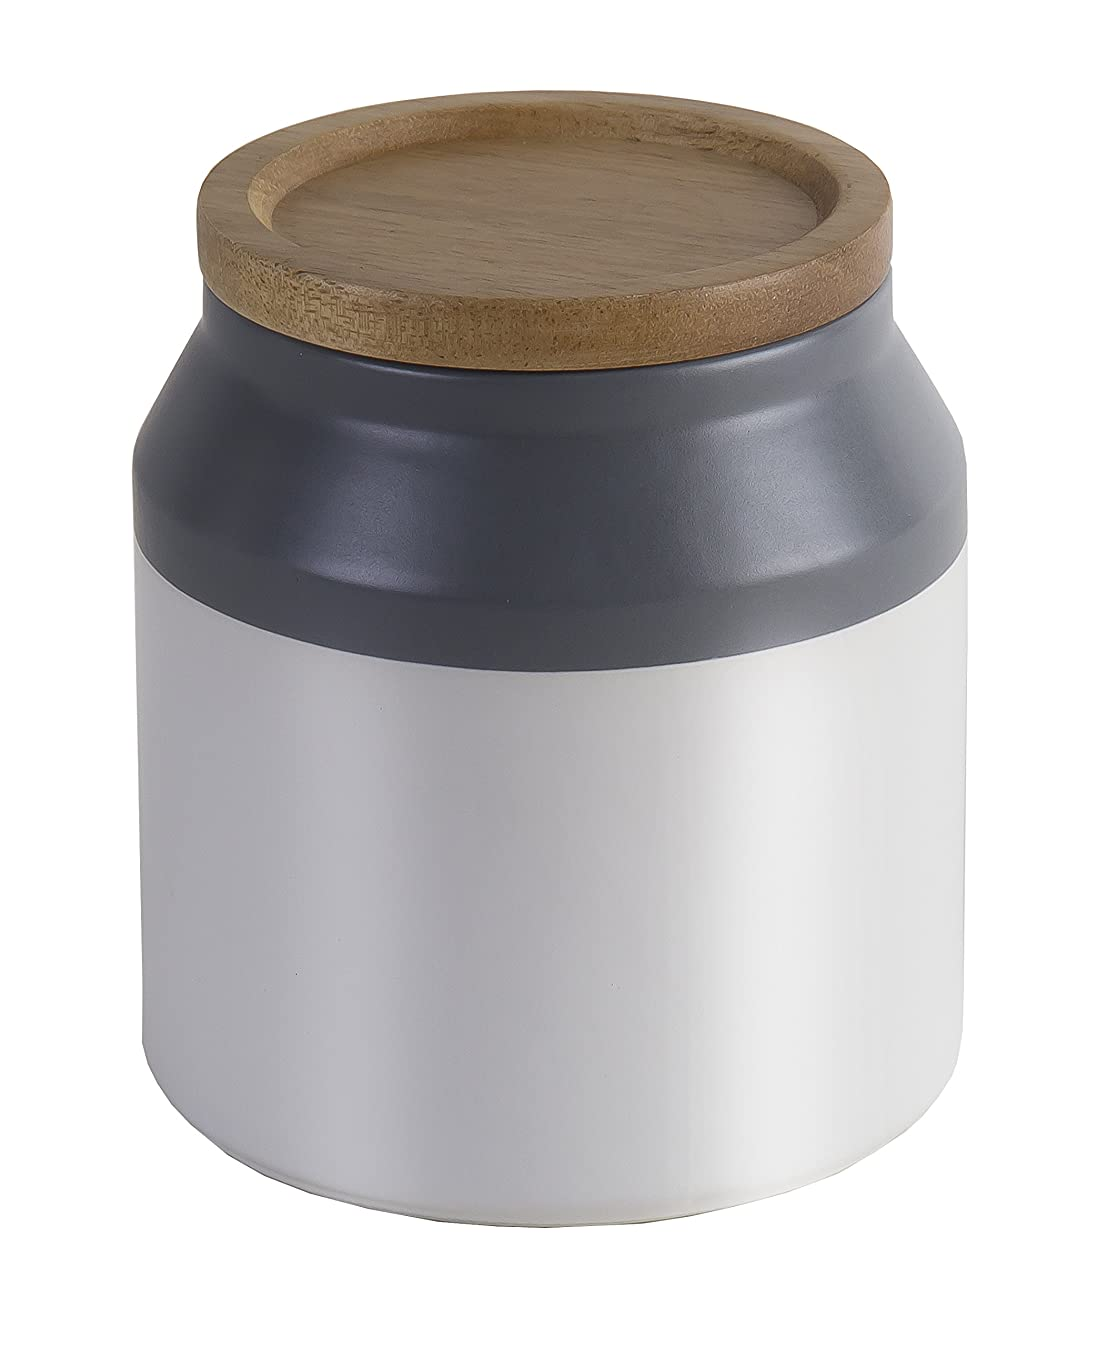 Jamie Oliver Food Storage Jar with Wooden Lid, Small Ceramic Kitchen Container, Gray